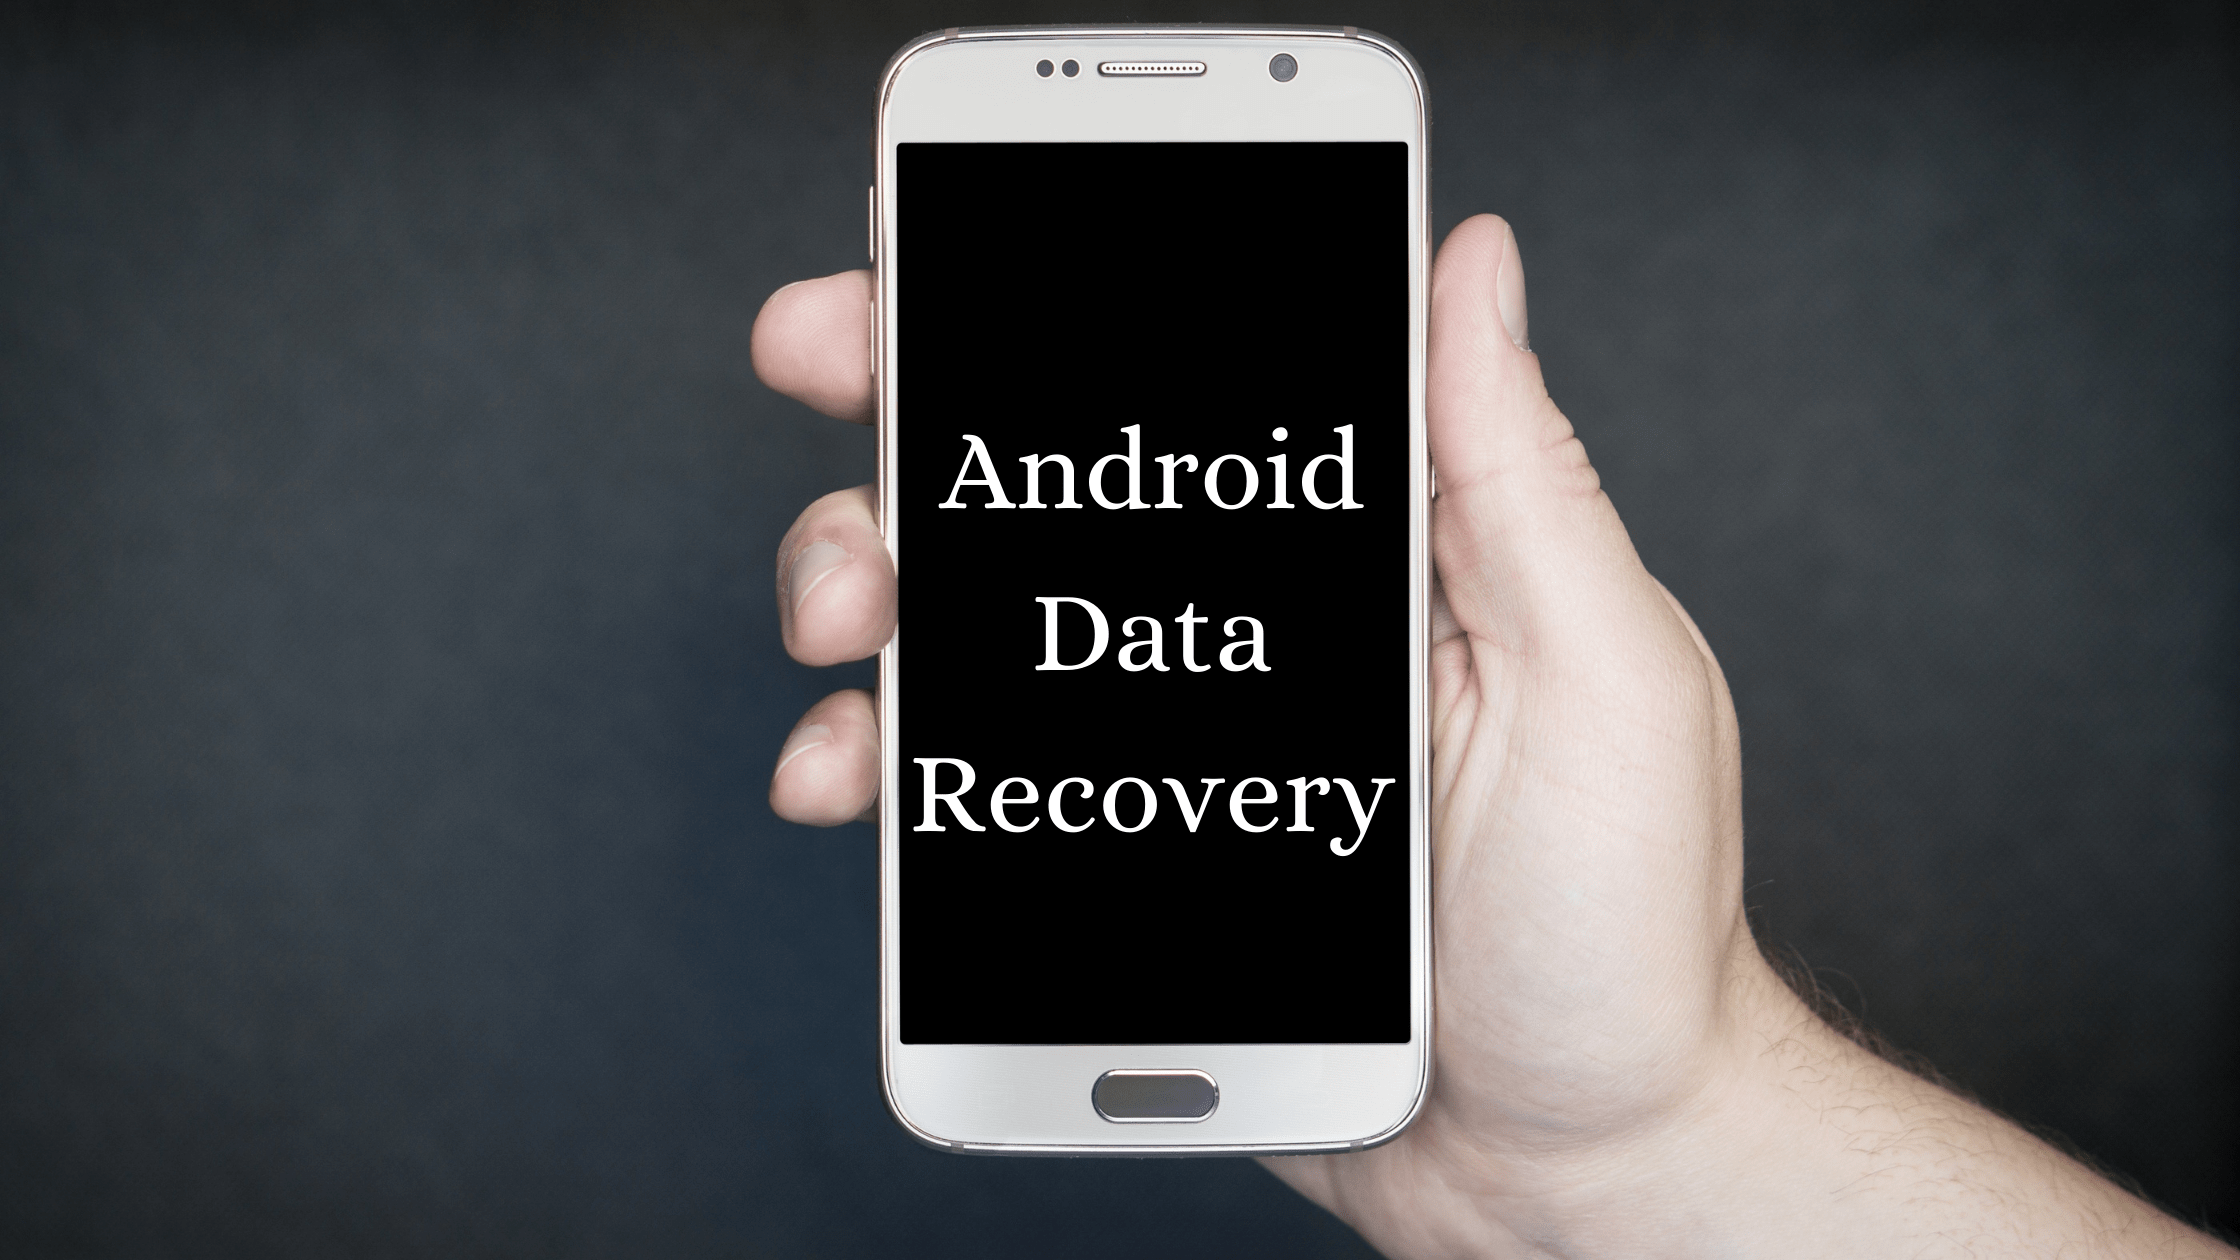 Android Data Recovery (2)-min.png